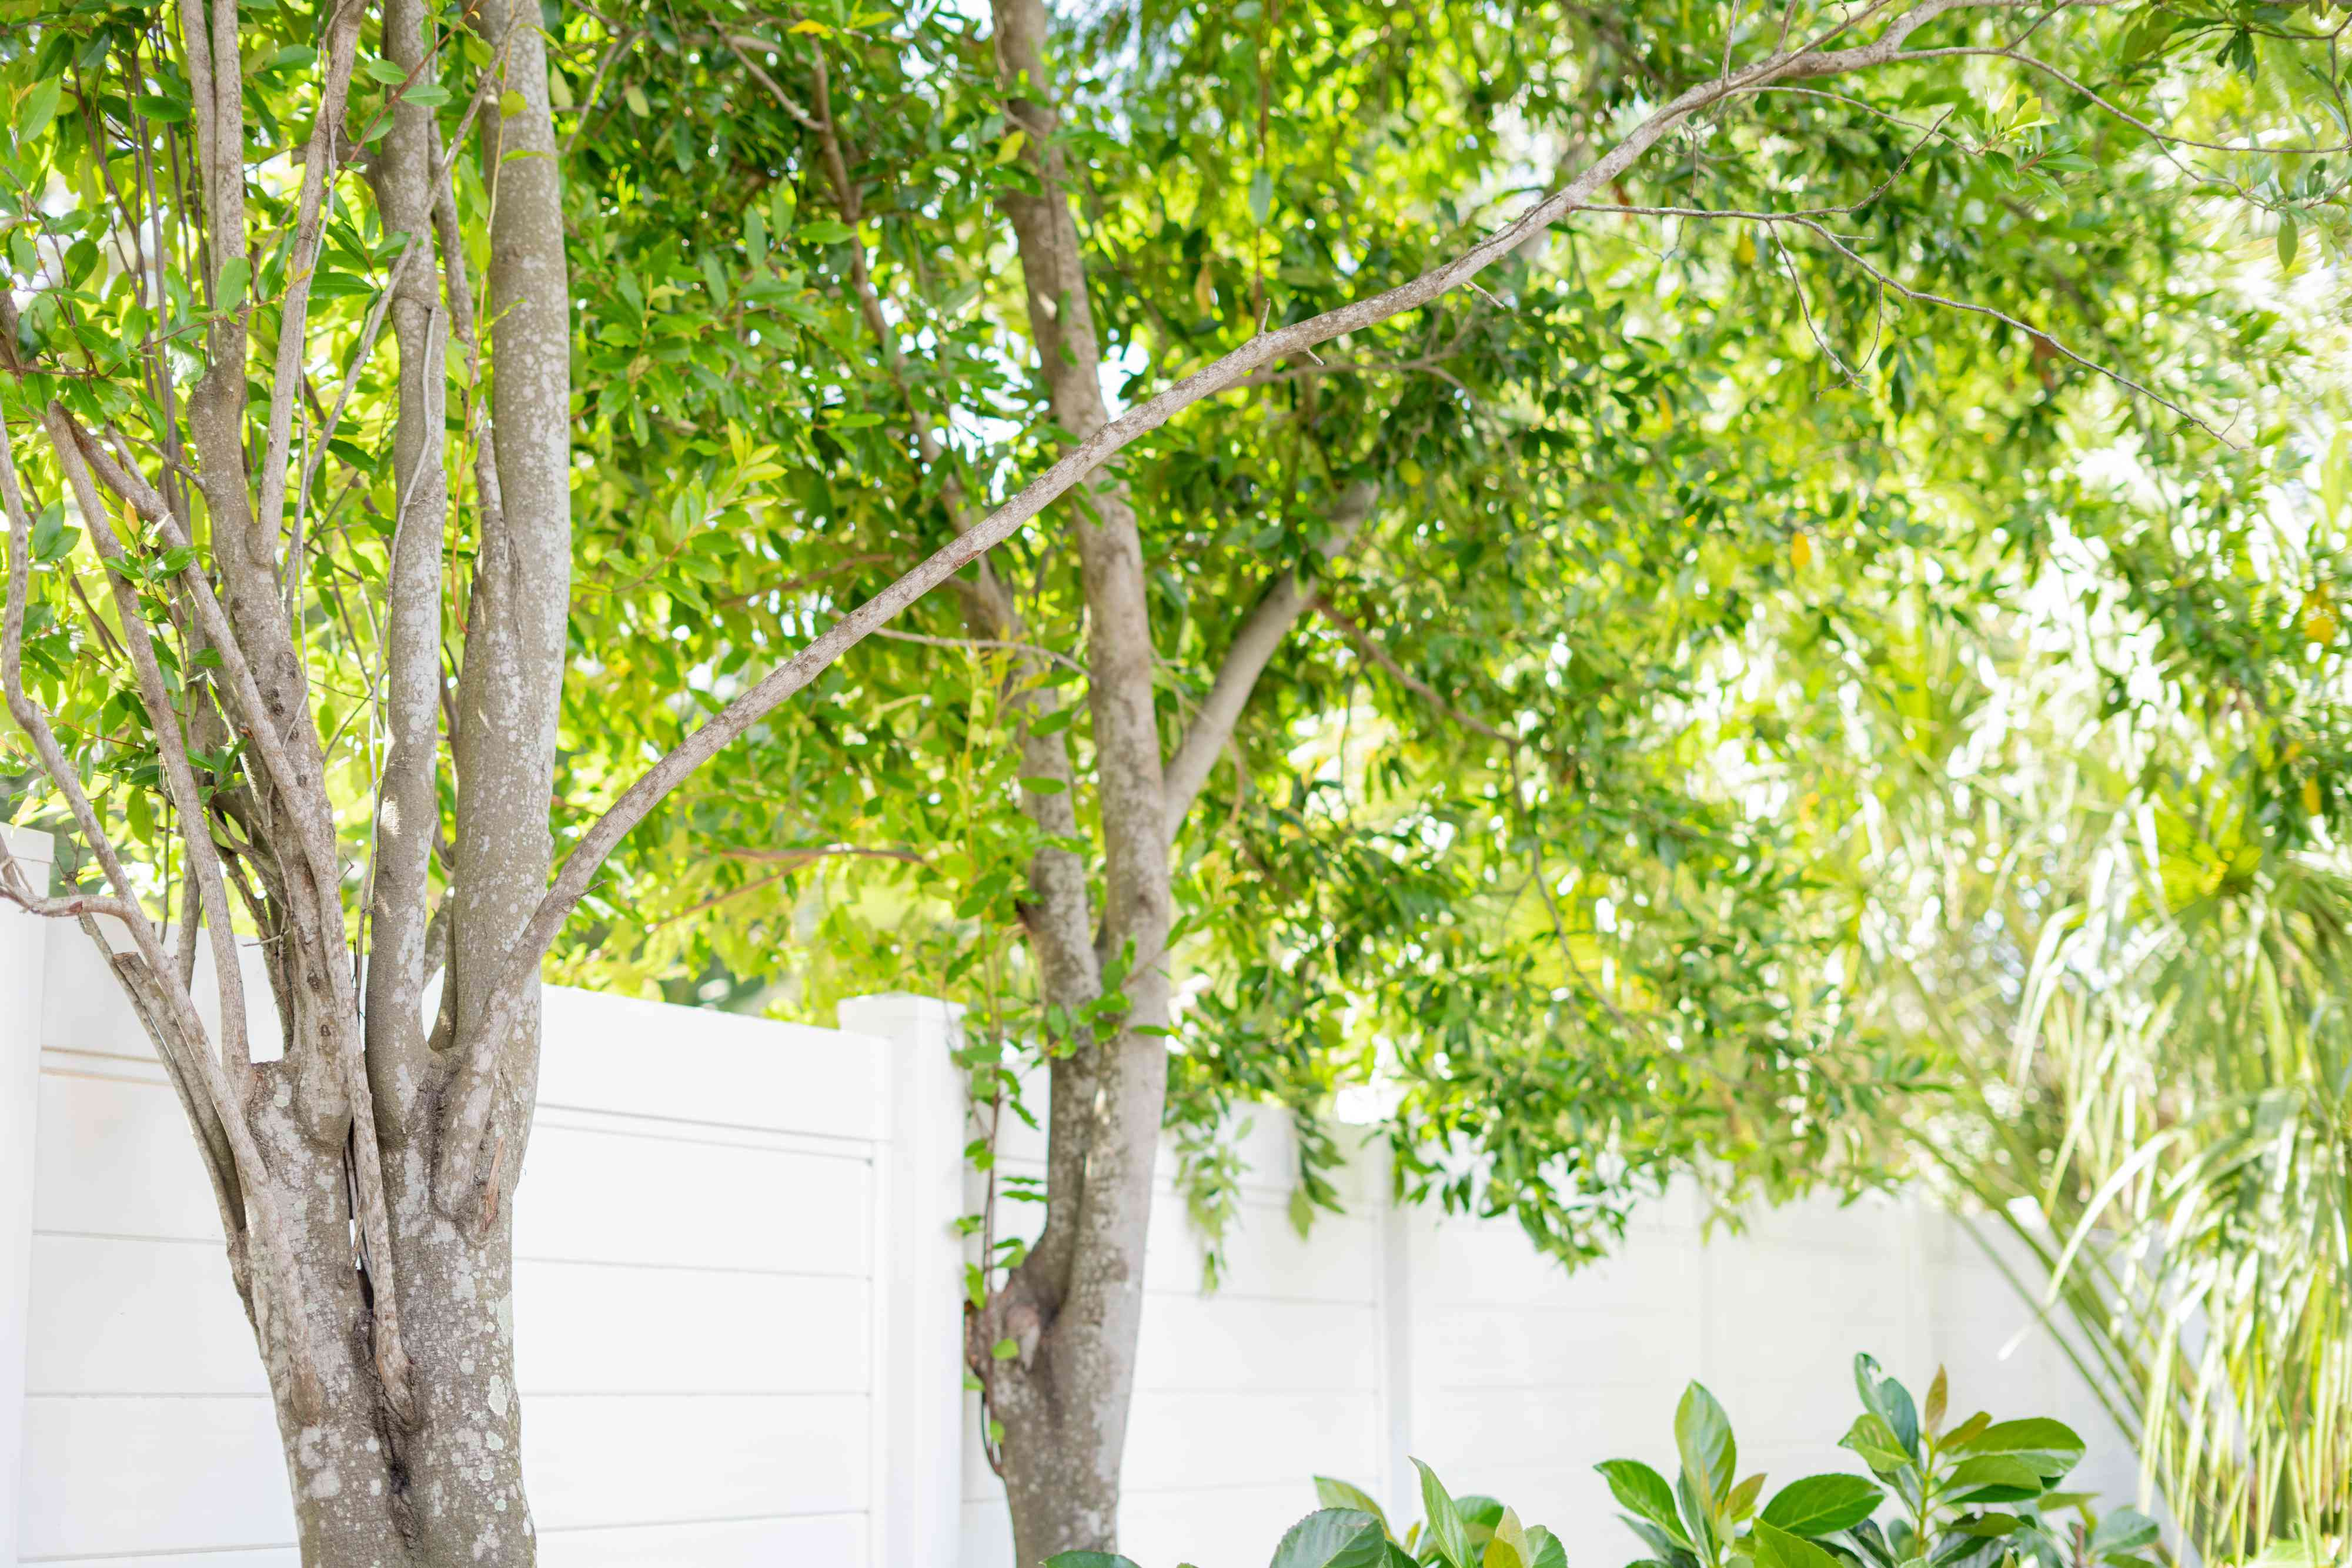 Trees near white fence trimmed for storm protection